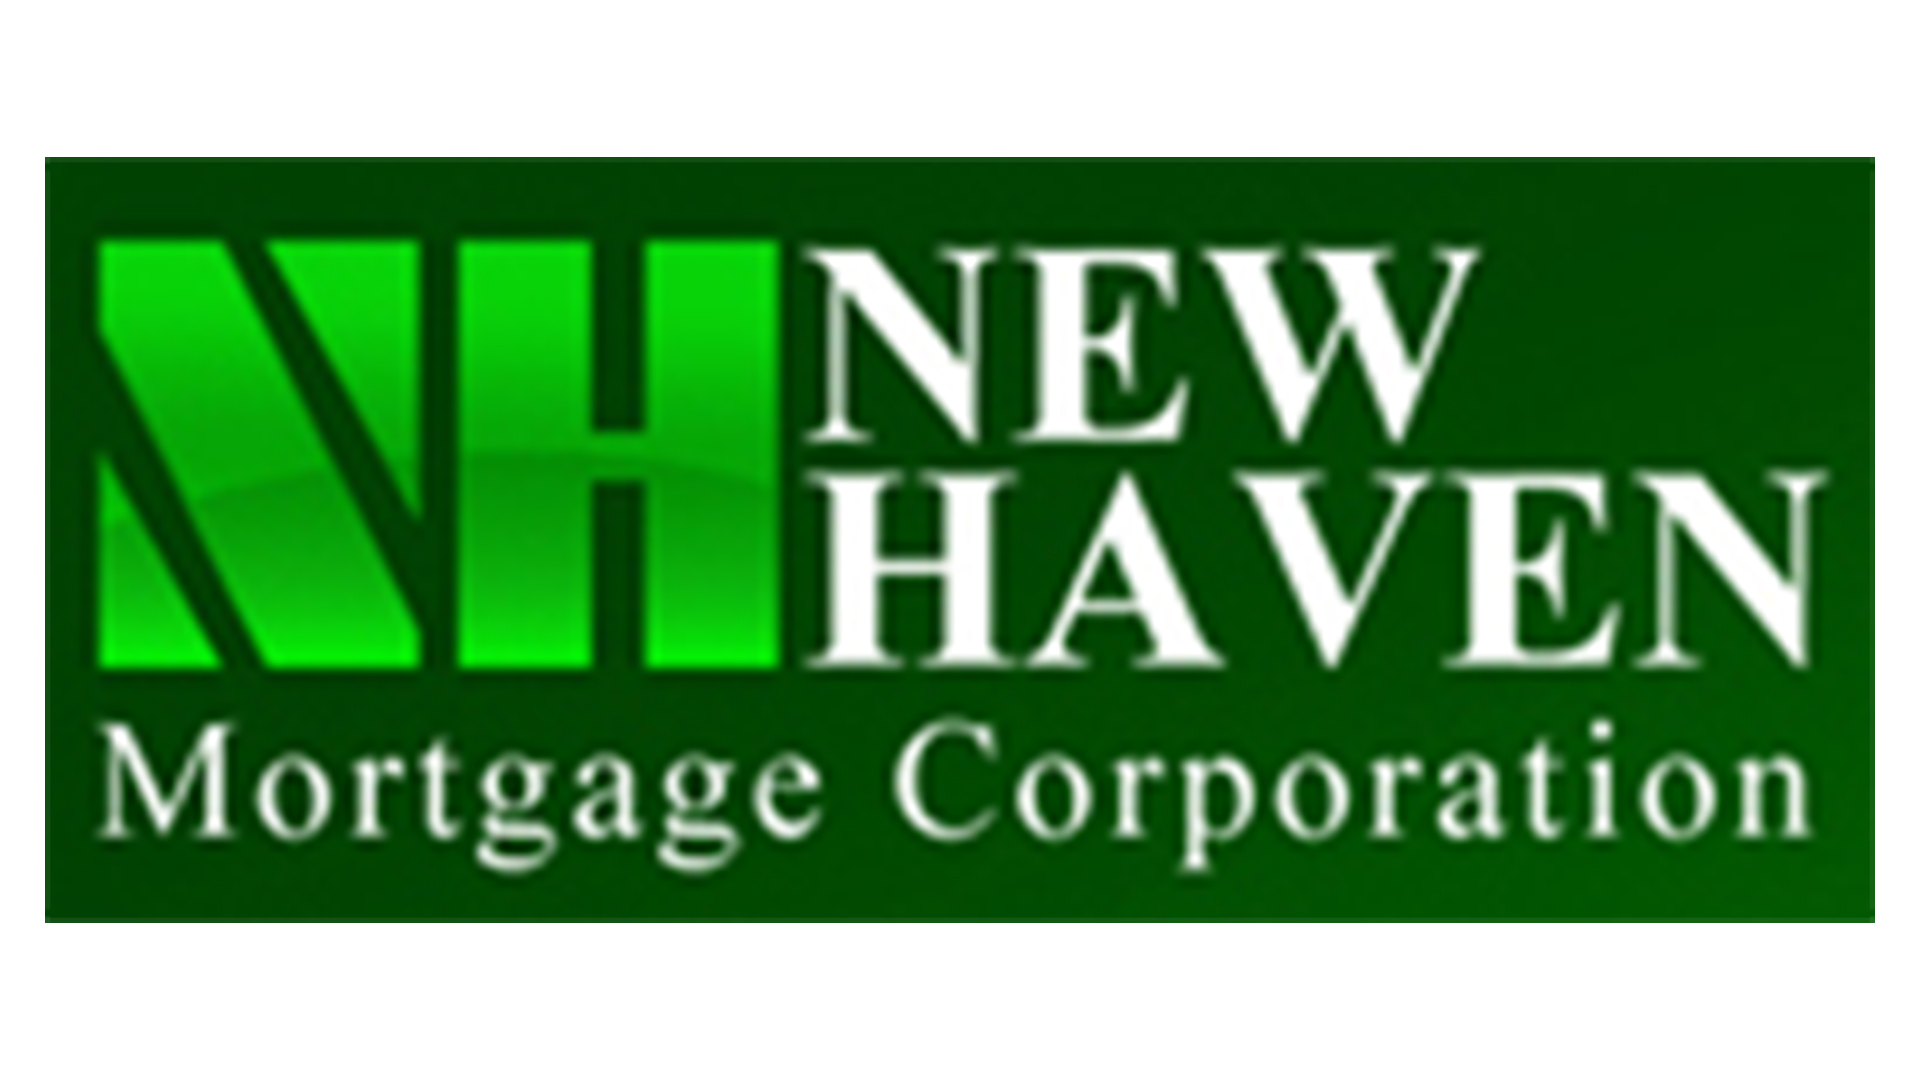 New Haven Mortgage Corporation